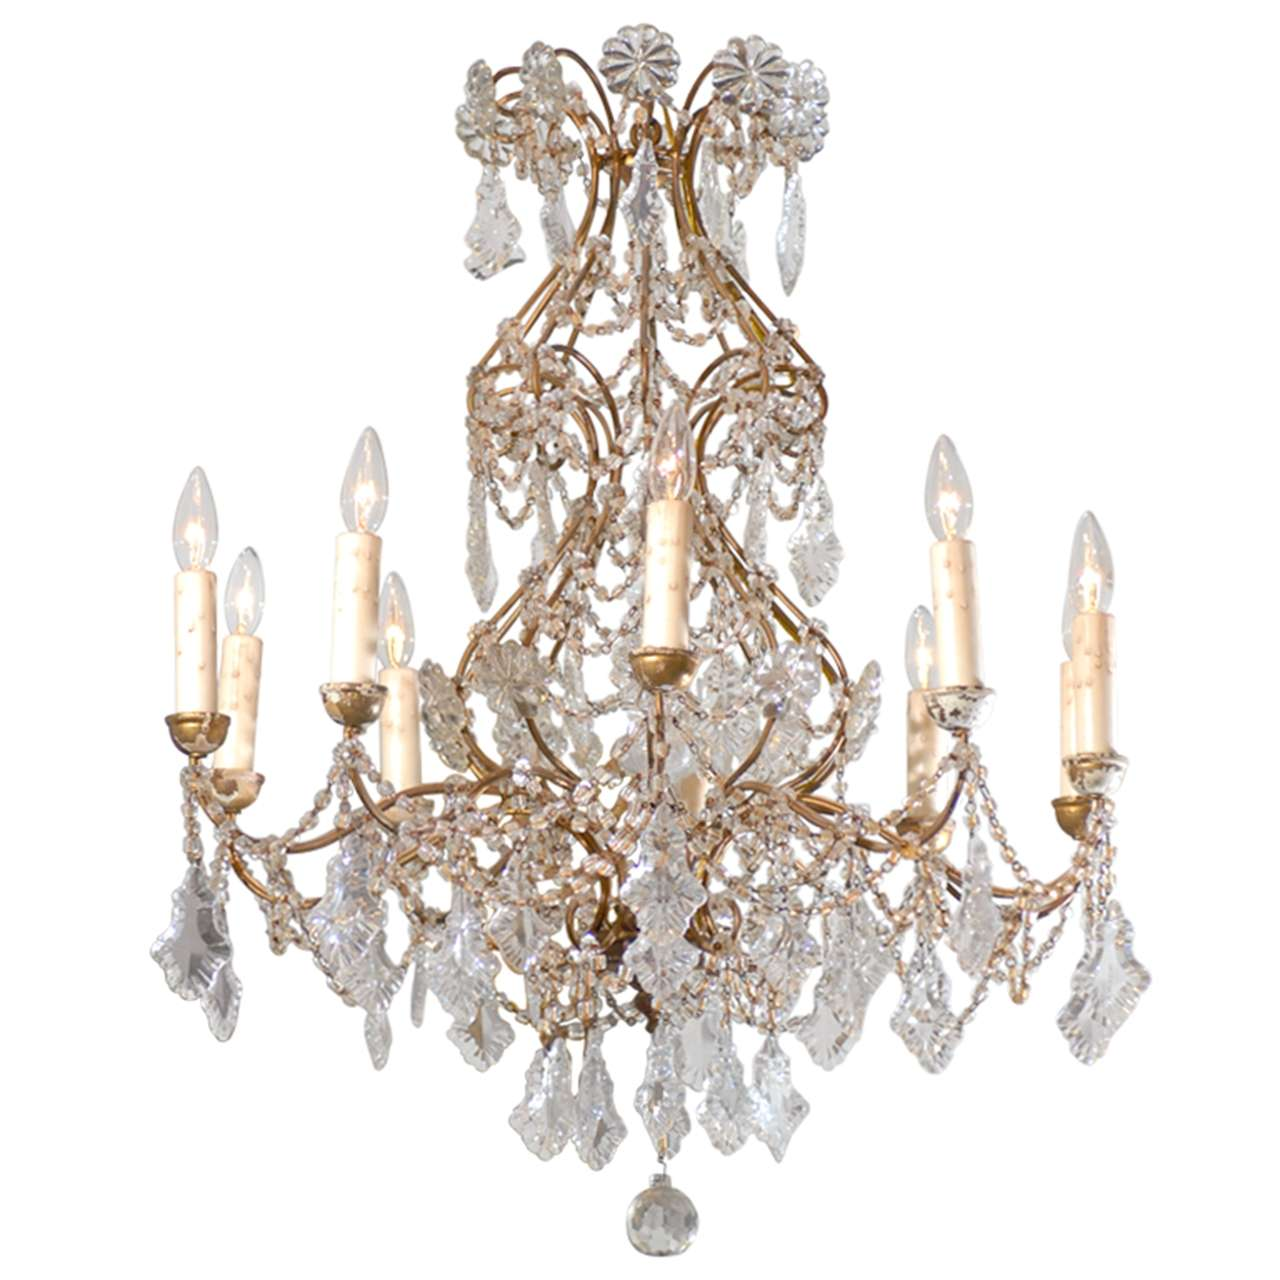 Italian 1850s Rococo Style Ten Light Crystal Chandelier With